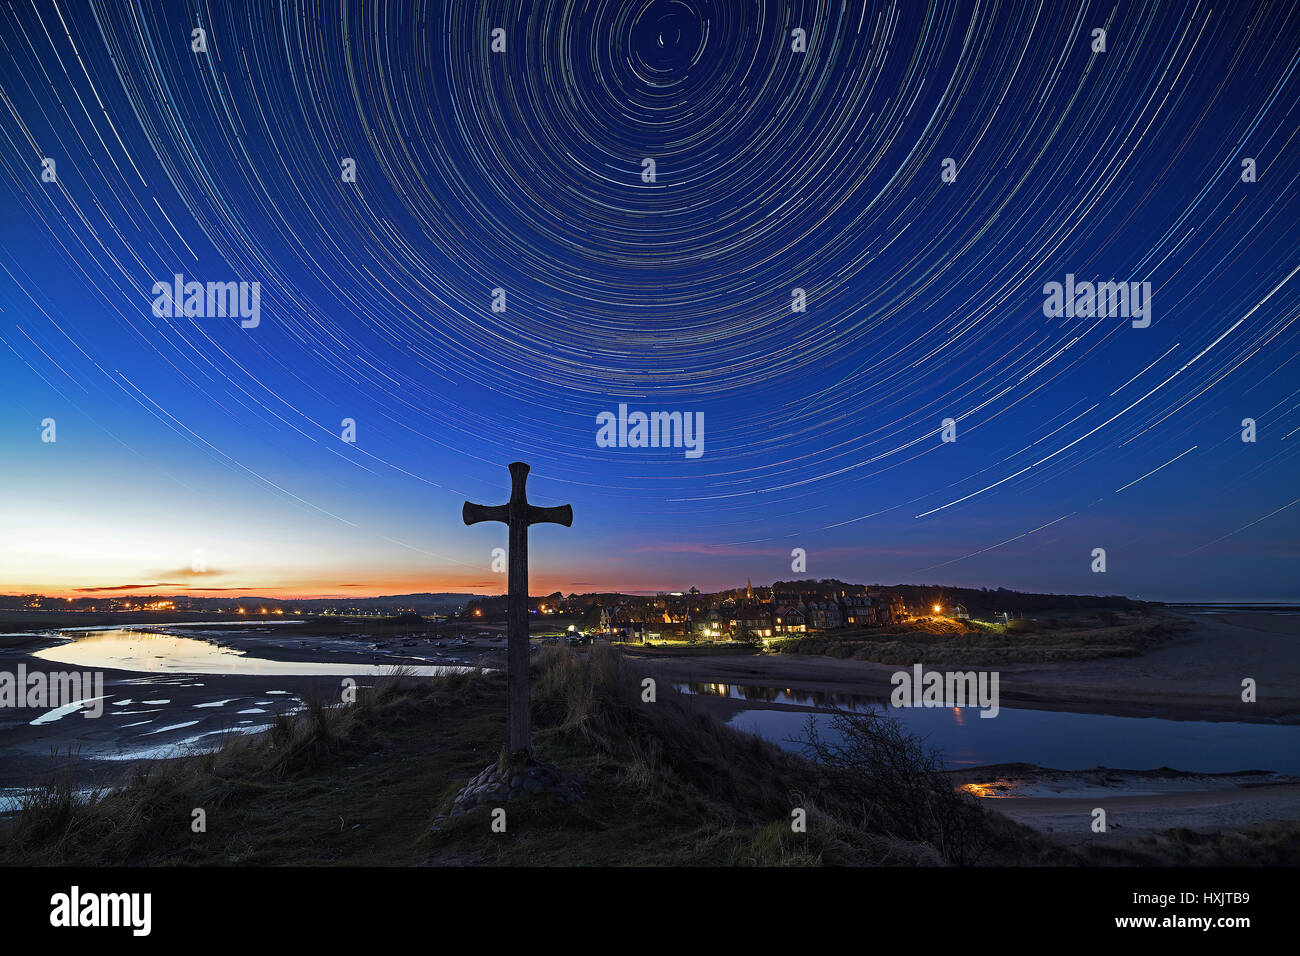 Star trails at night above Alnmouth from Church Hill on the Northumberland coast, England, United Kingdom, Europe - Stock Image